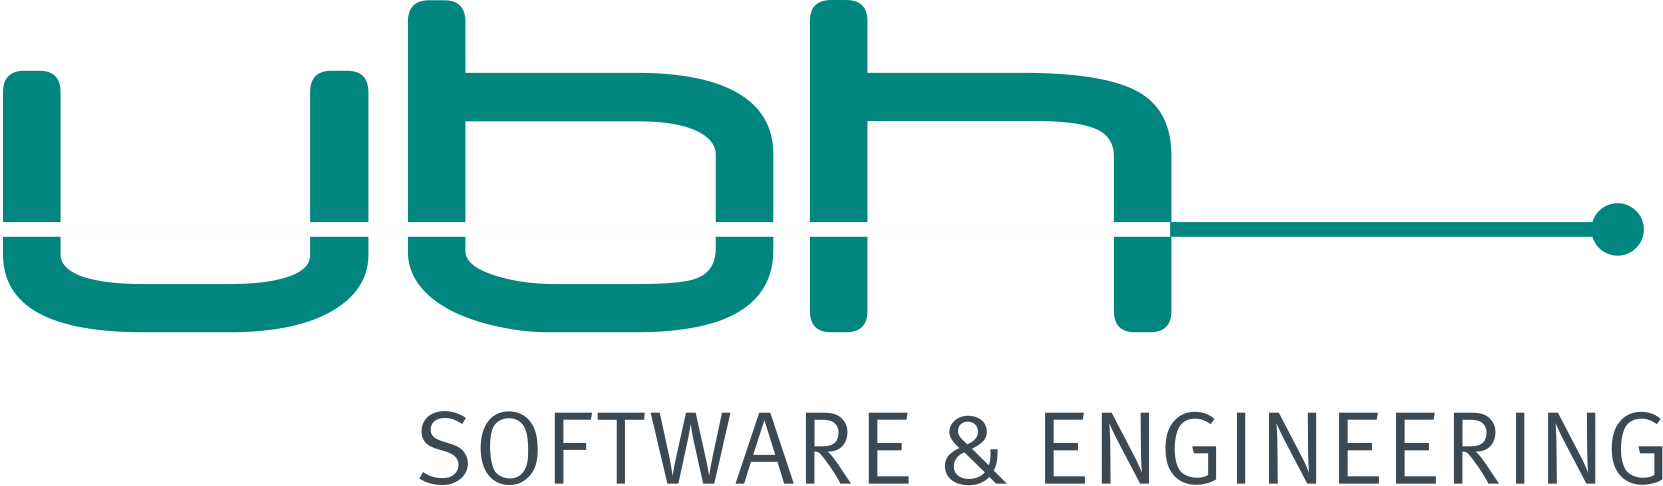 ubh software & engineering gmbh